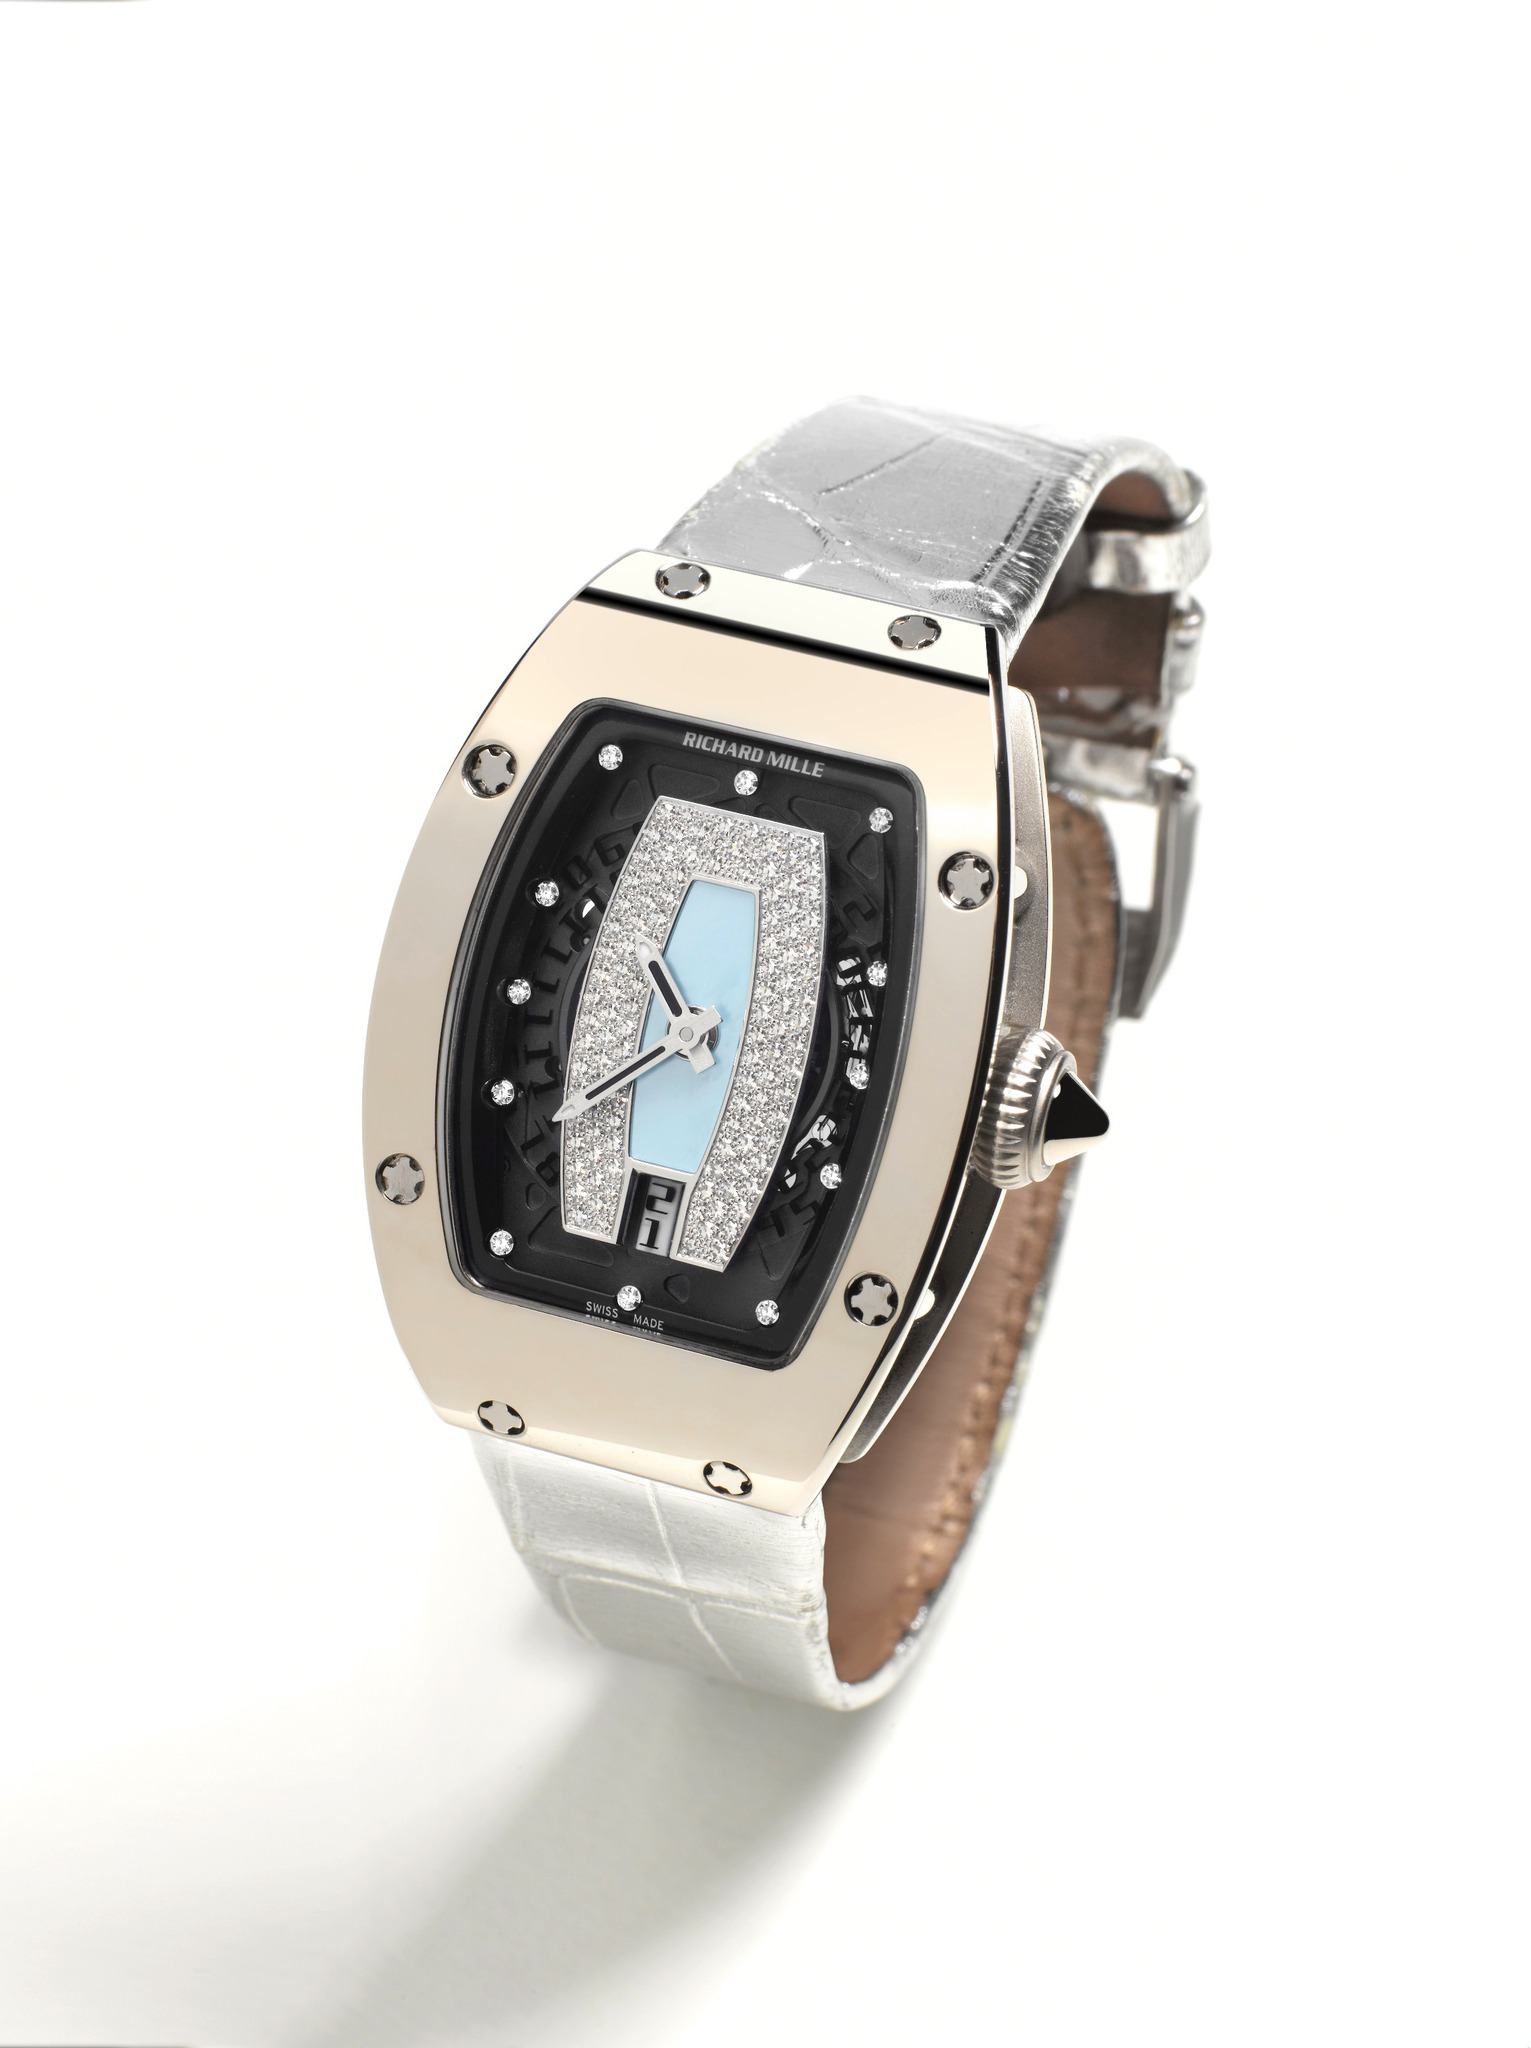 Replica Richard Mille RM 007 White Gold and Silver Alligator Watch